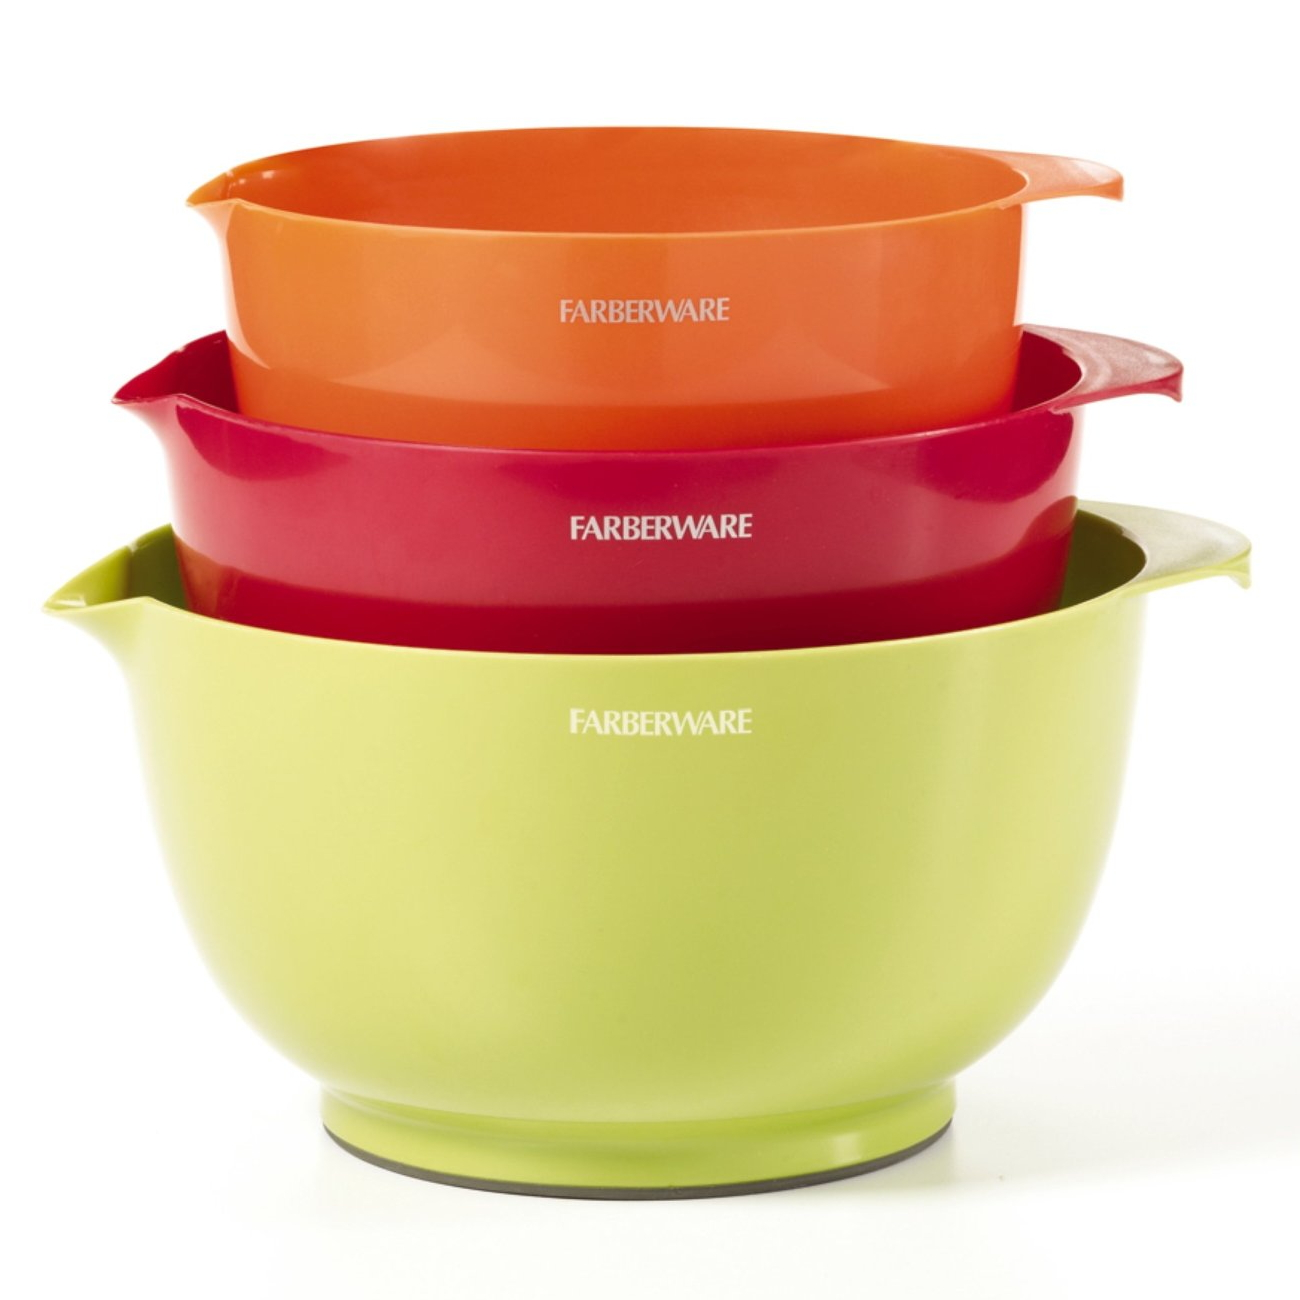 Farberware Classic 3 Piece Colorful Mixing Bowl Set